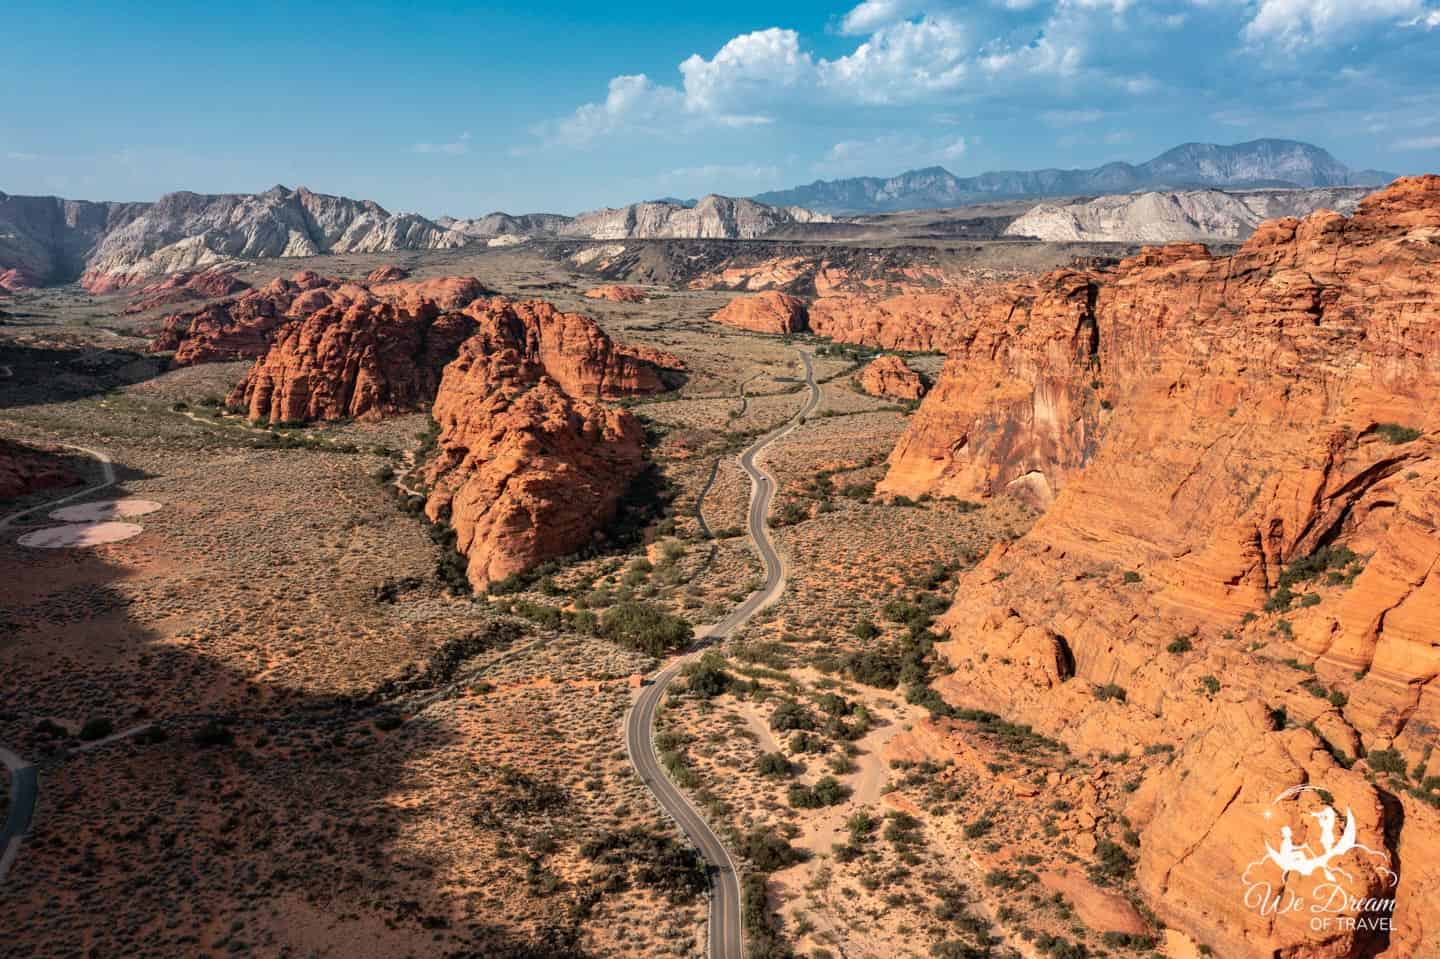 Aerial view of Snow Canyon State Park showing the road leading through the red rock landscape